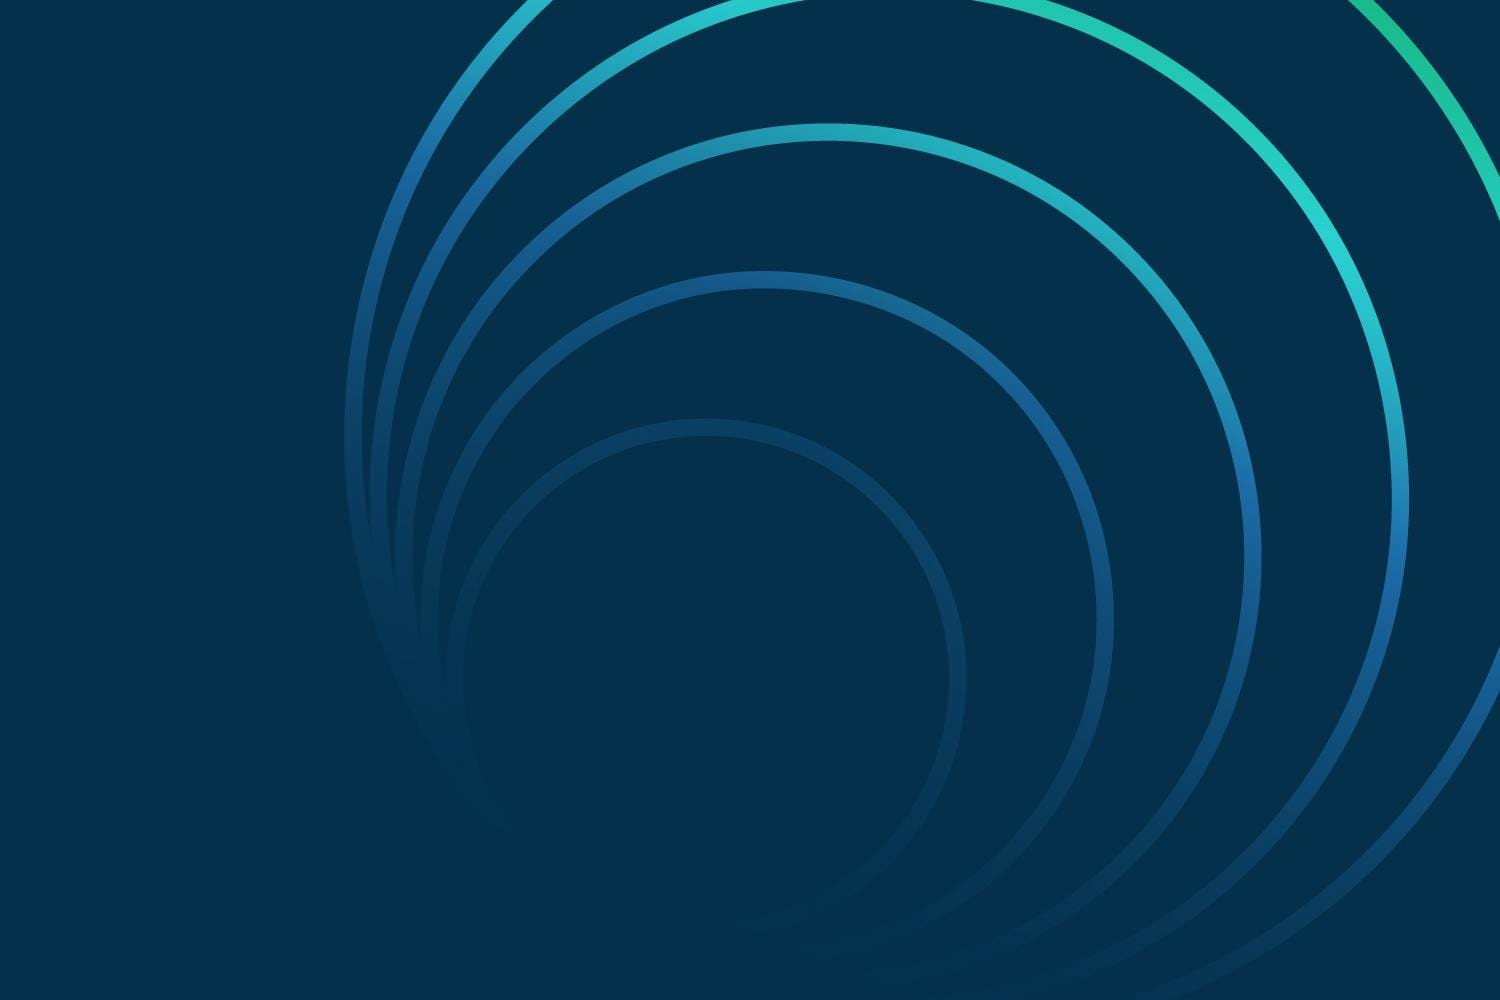 Blue and aqua nested circles on dark blue background